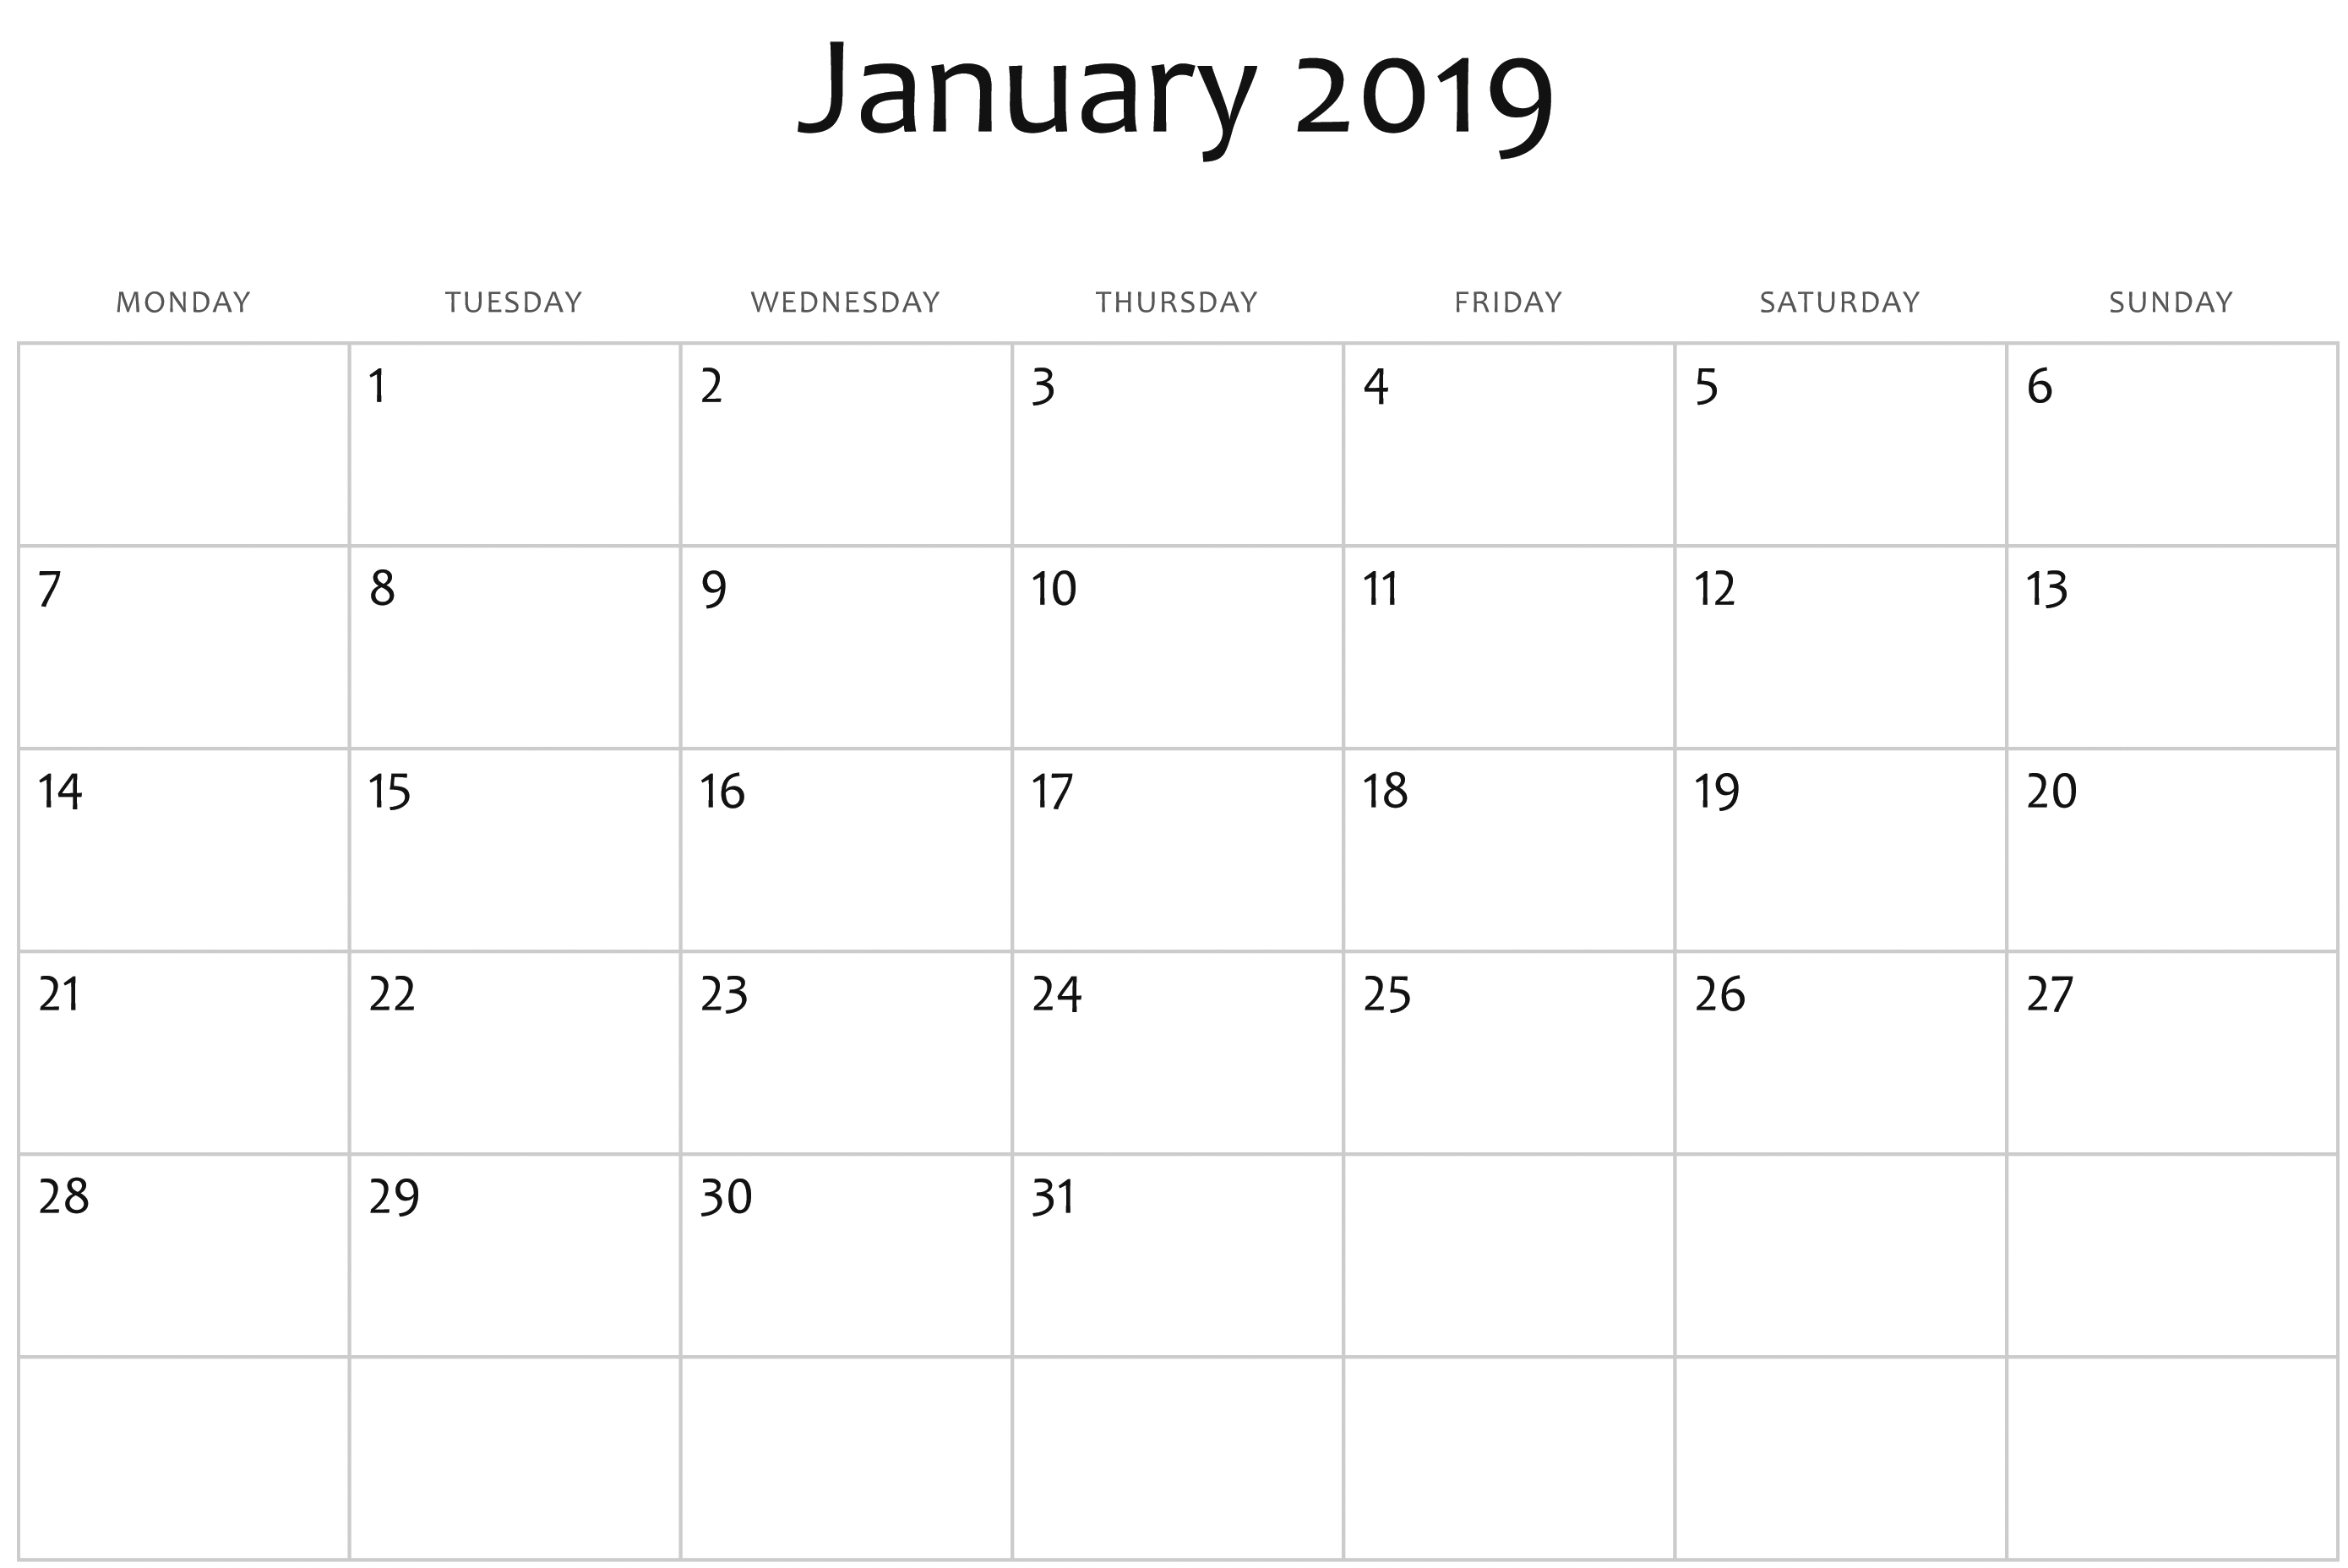 Template Of January 2019 Calendar - Free Printable Calendar with regard to Free Printable Blank Calendar Templates